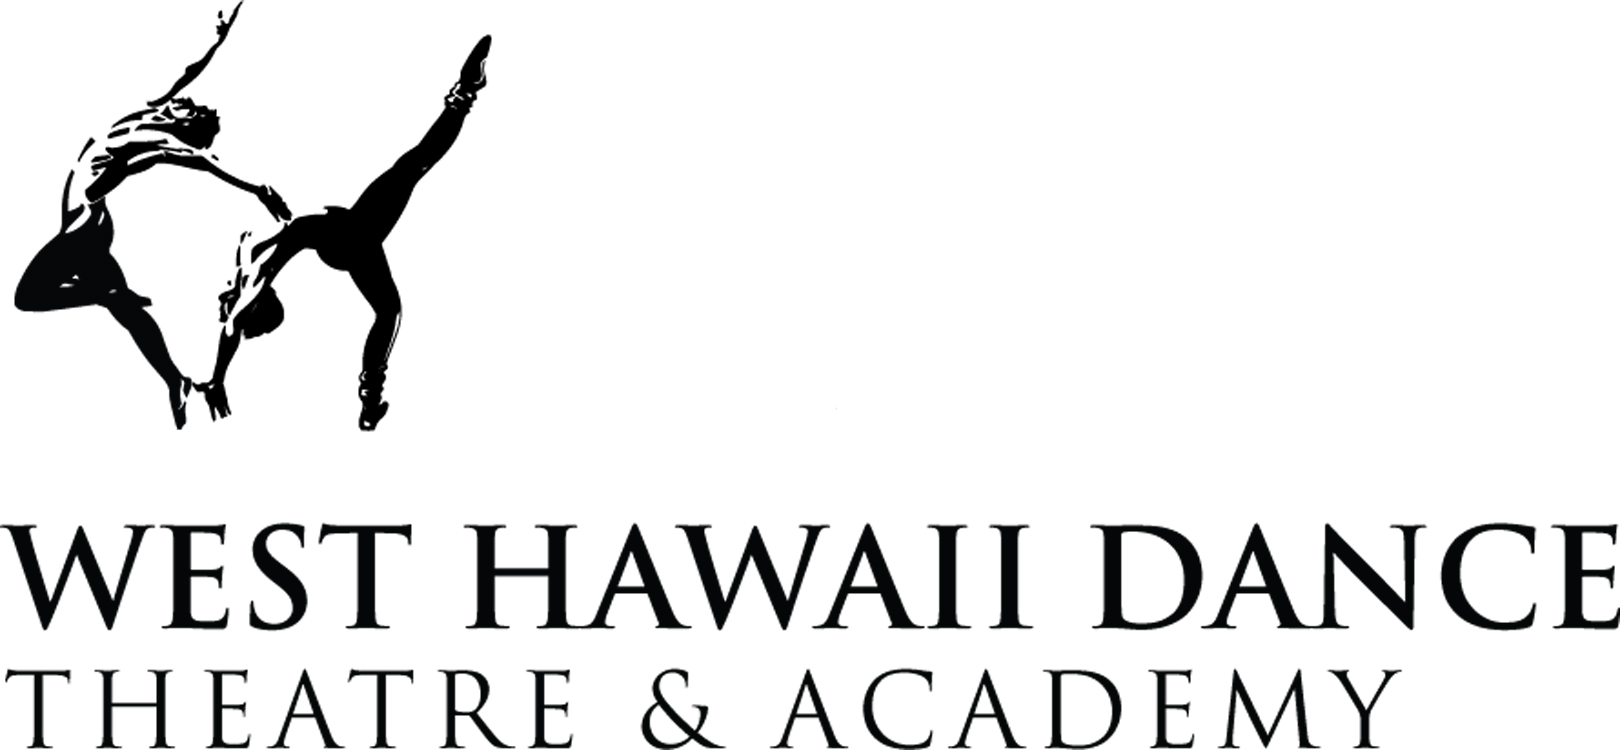 West Hawaii Dance Theatre